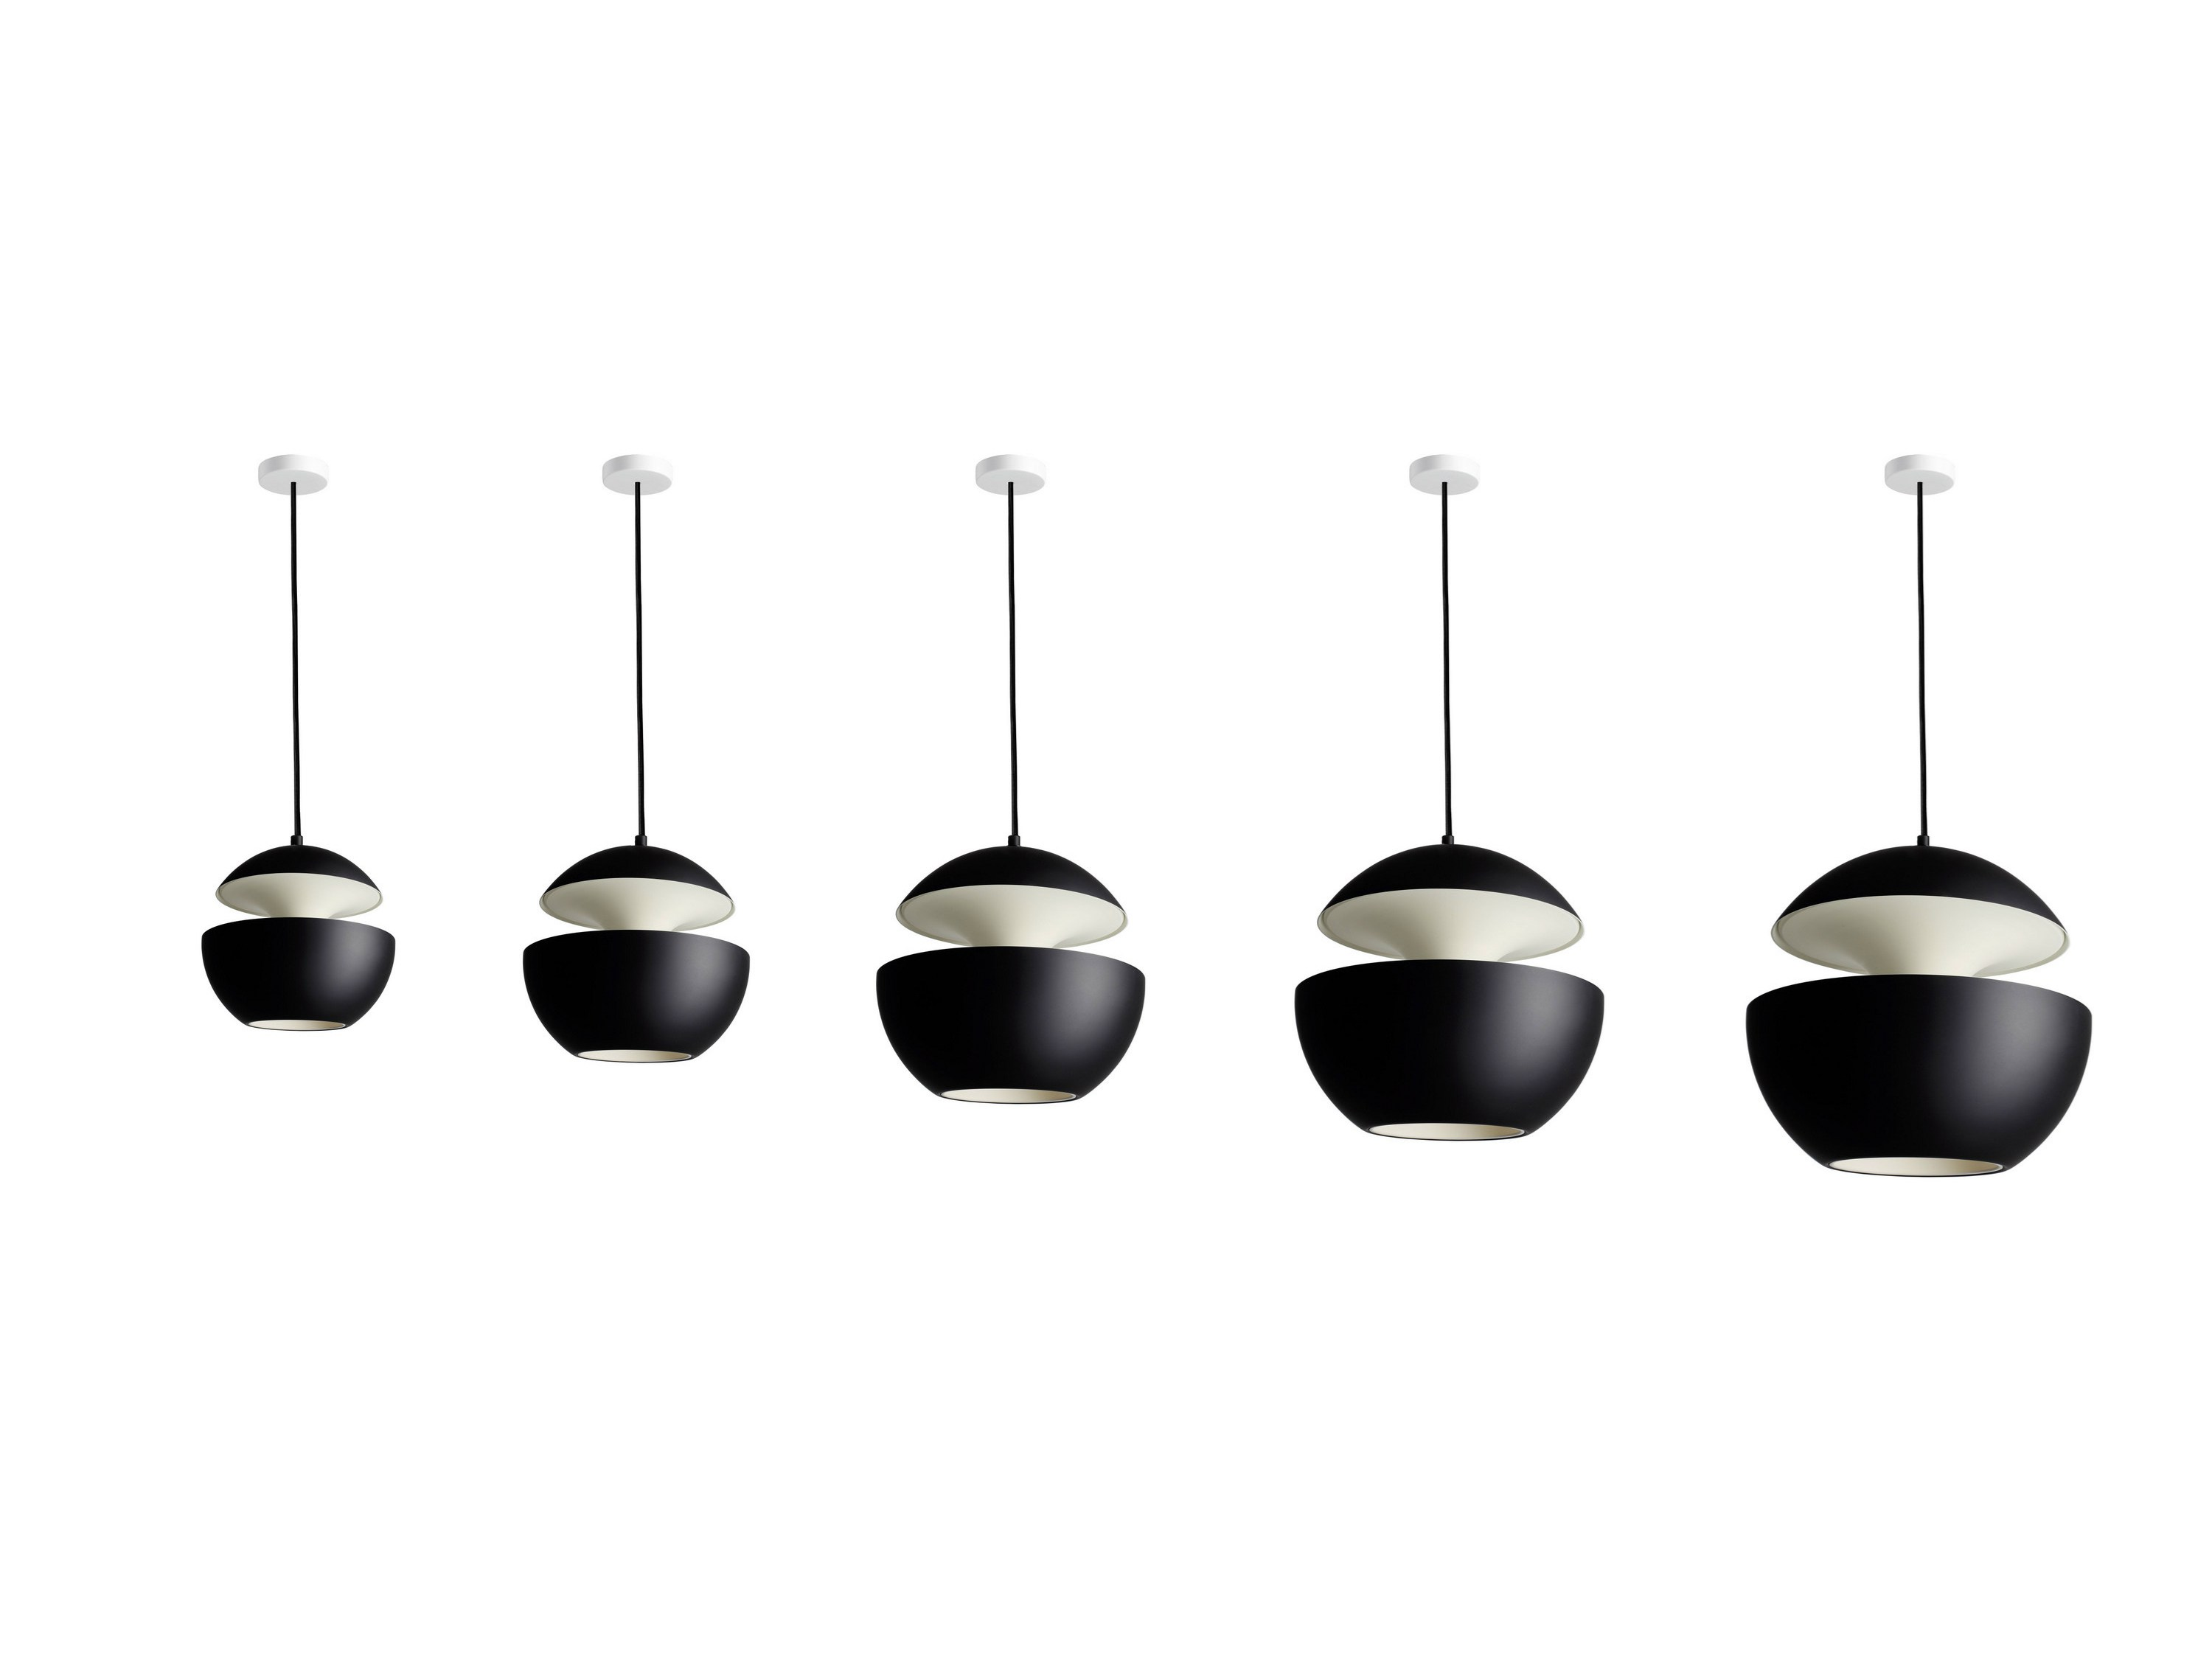 aluminium pendant lamp hcs 175 by dcw ditions design bertrand balas. Black Bedroom Furniture Sets. Home Design Ideas